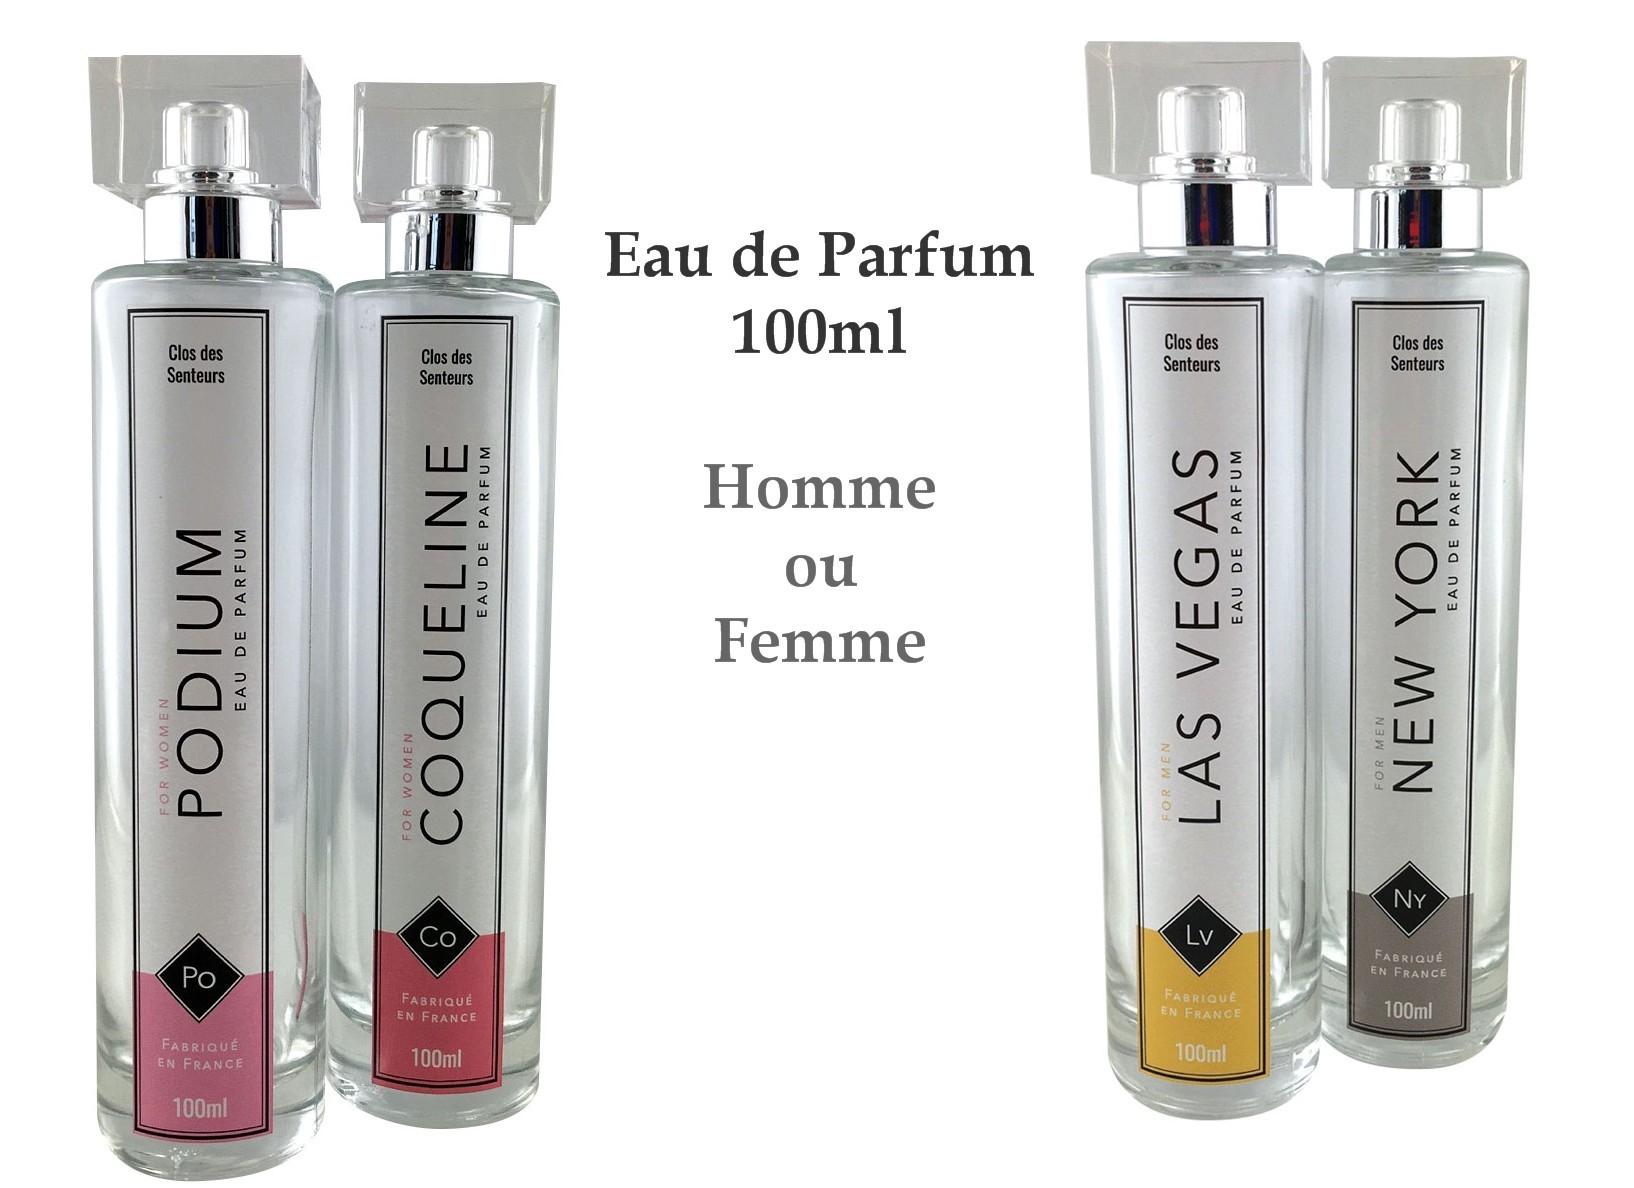 Eau de Parfum for men and women